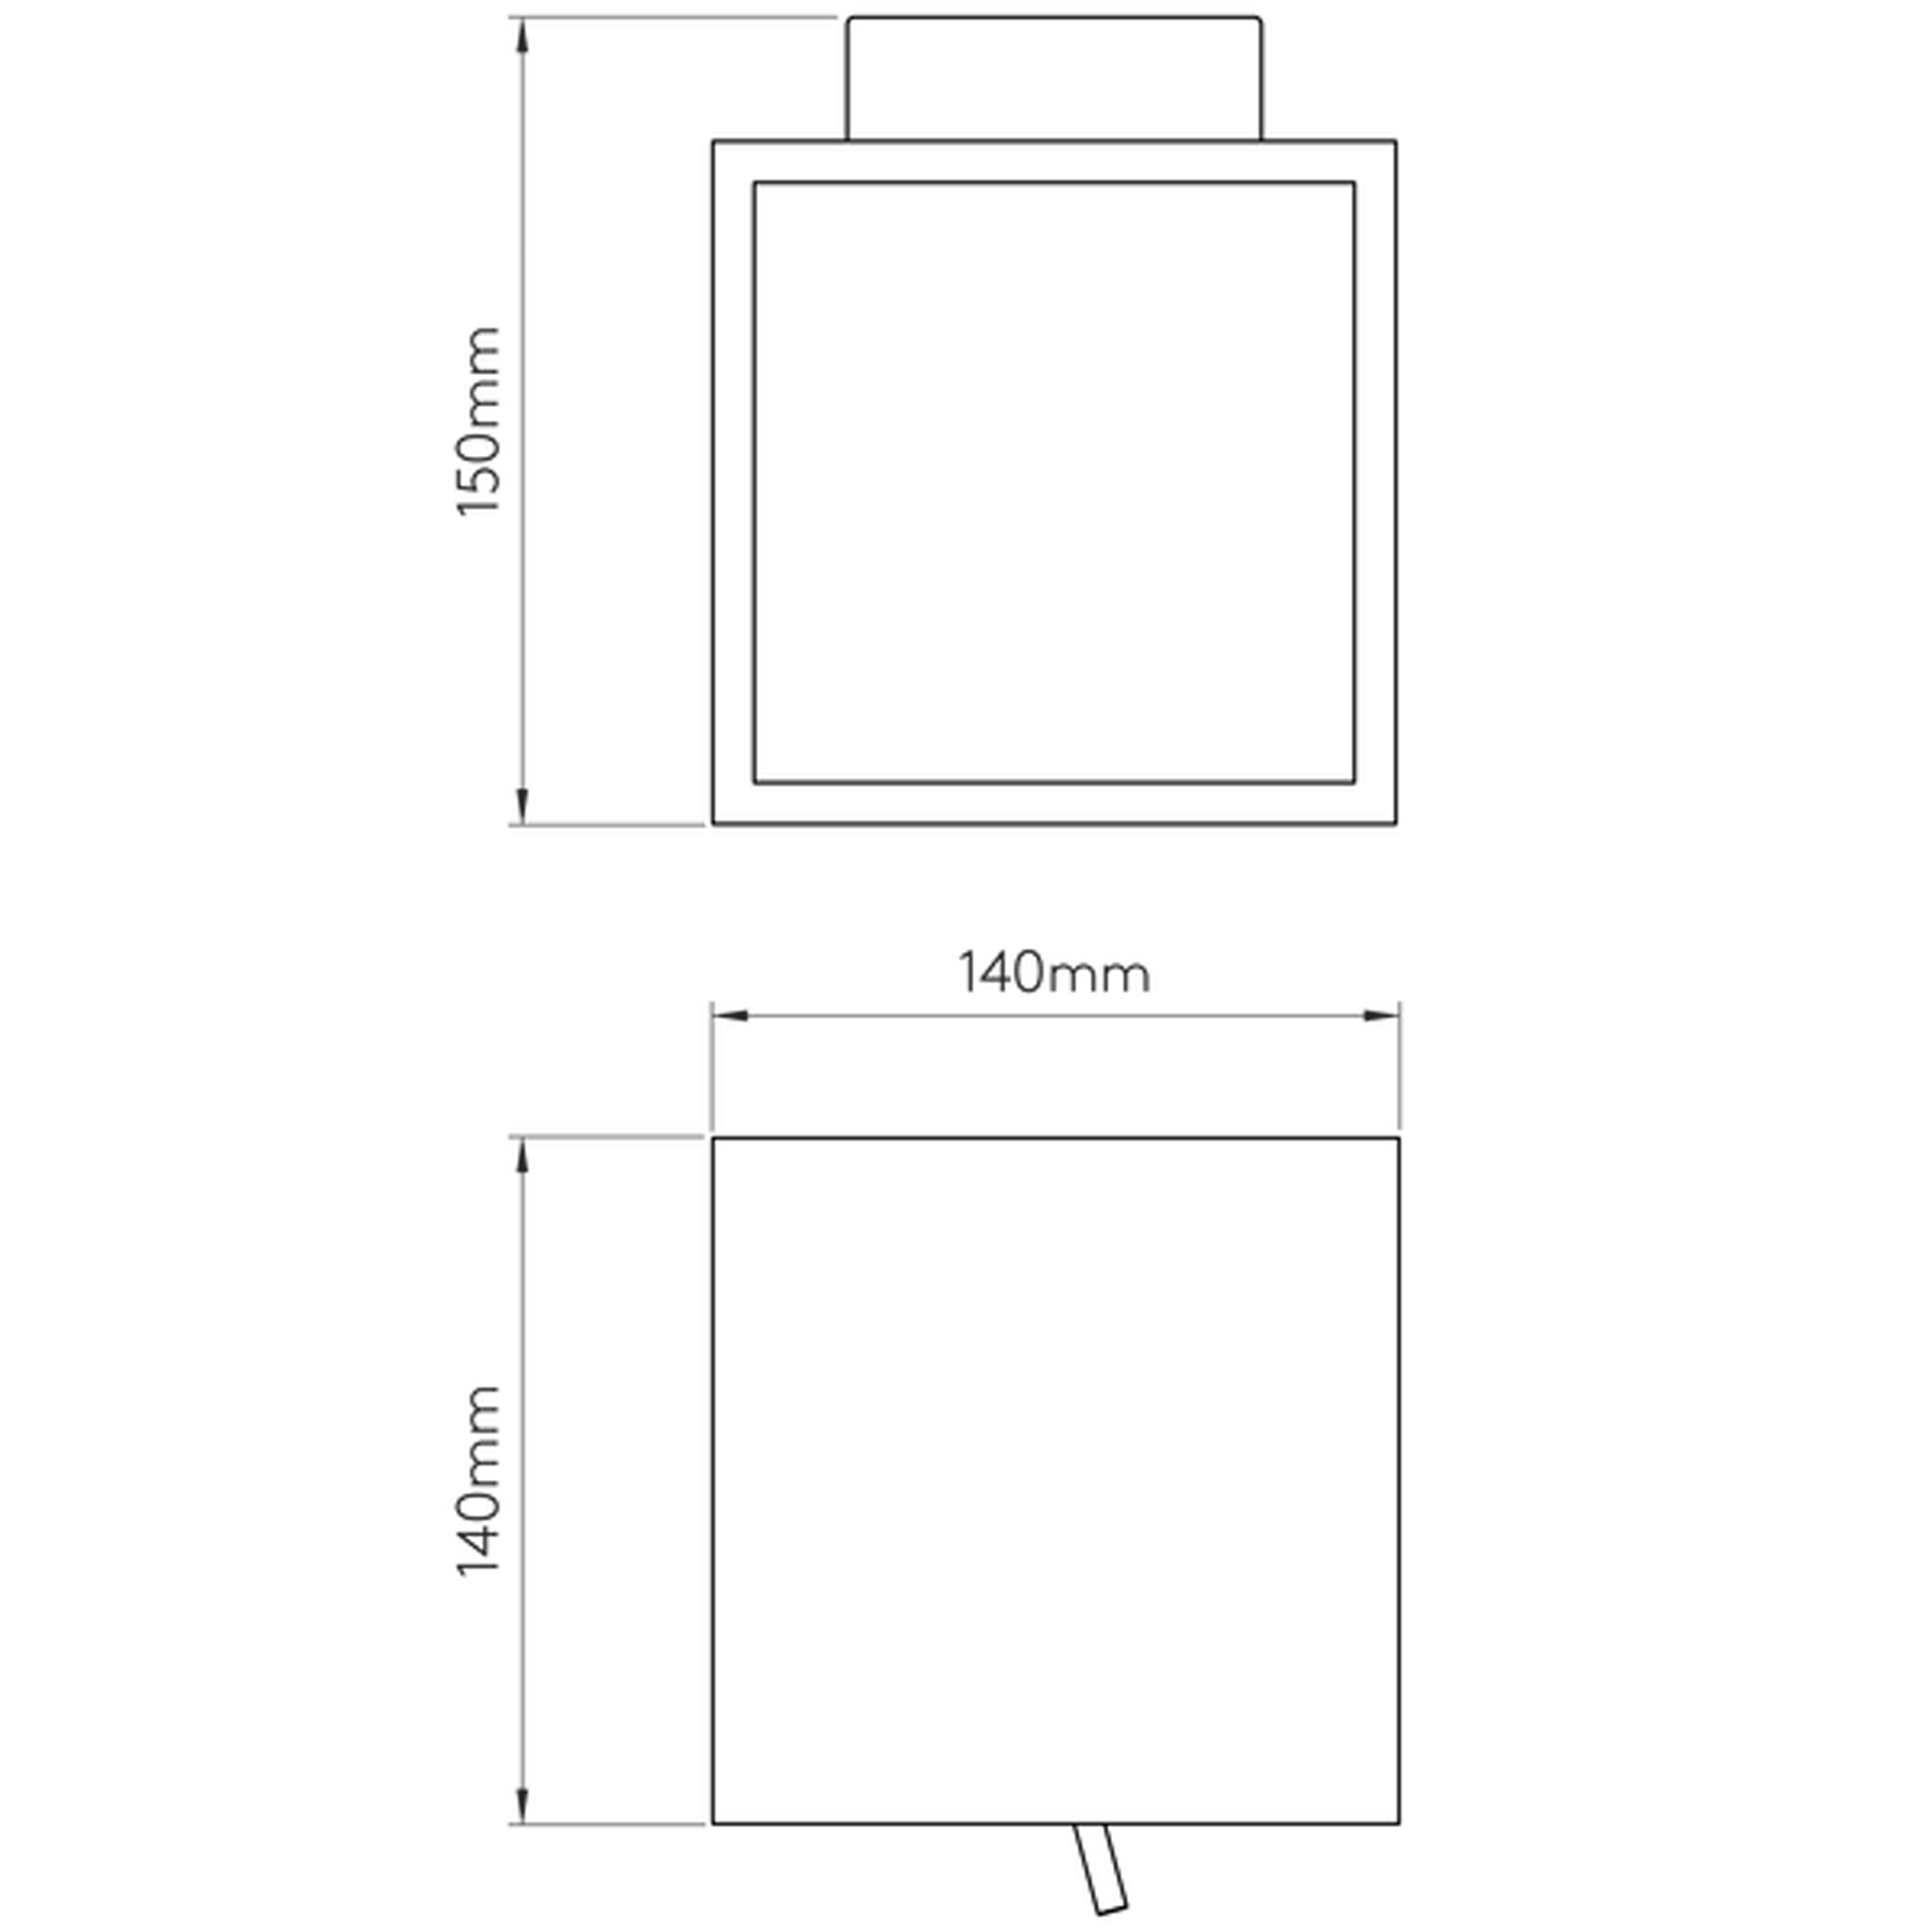 Astro Pienza 140 Switched Wall Light Line Drawing